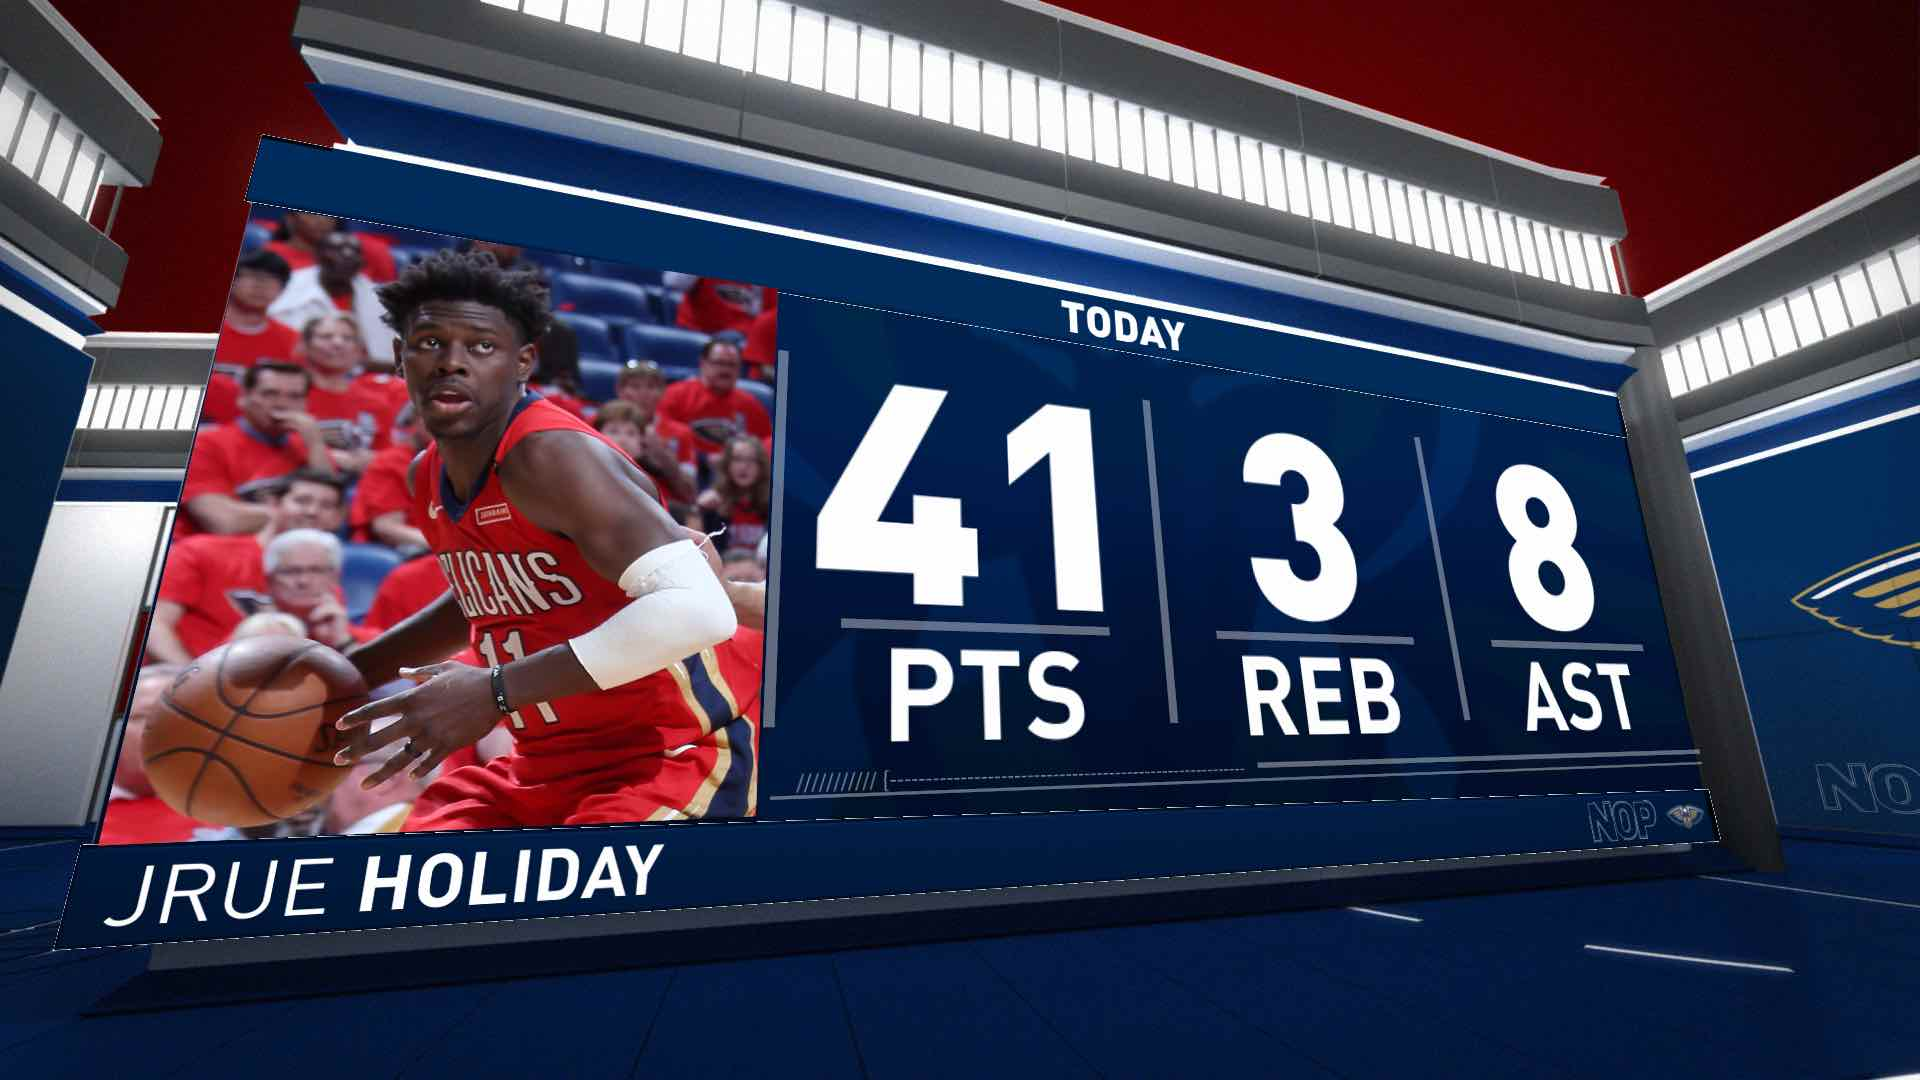 Jrue Holiday (41 points) Highlights vs. Portland Trail Blazers